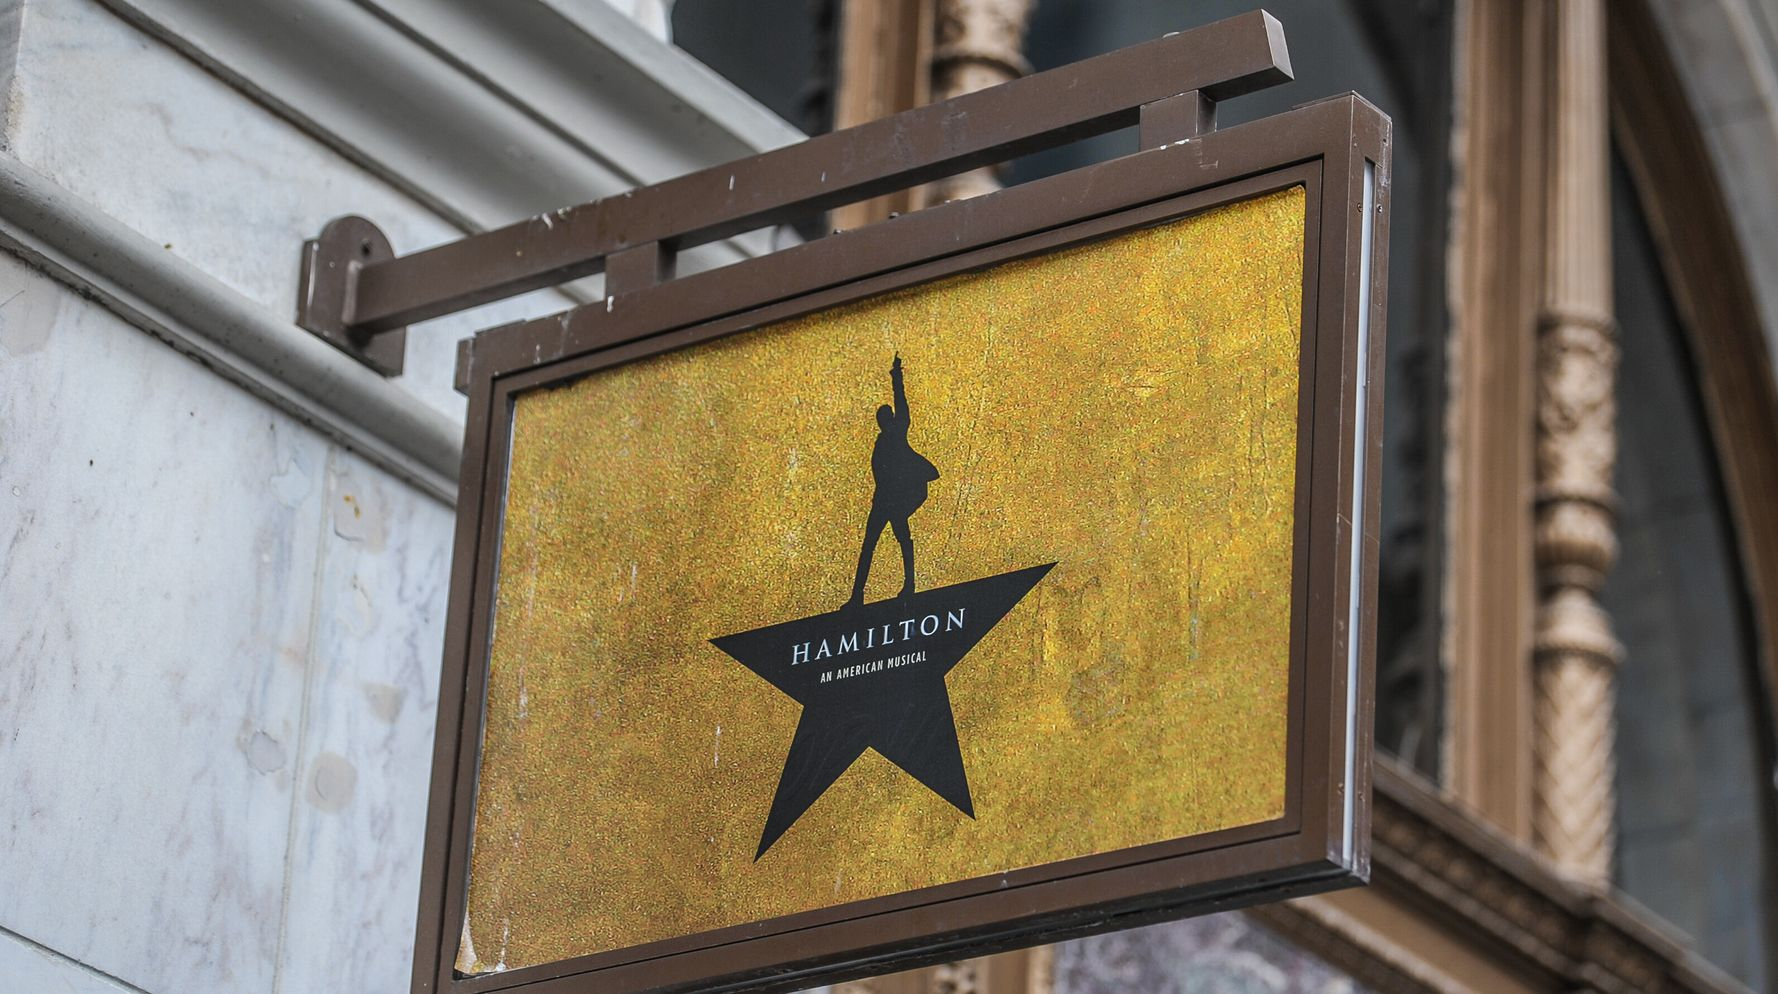 Five Years After Its Debut, 'Hamilton' Airs On Disney+ To A Nuanced Response